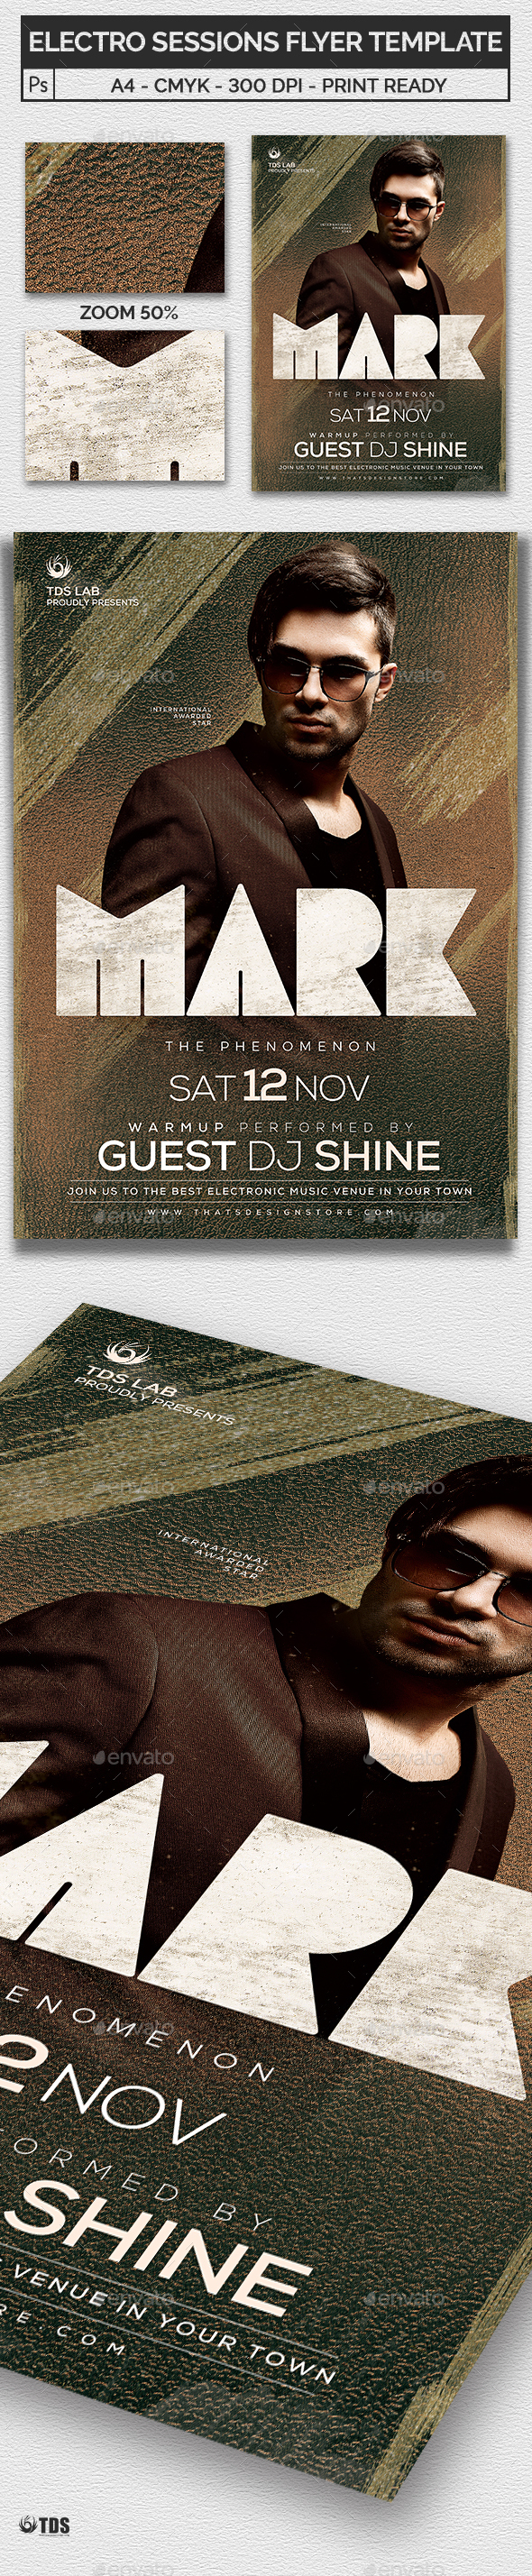 Electro Sessions Flyer Template - Clubs & Parties Events